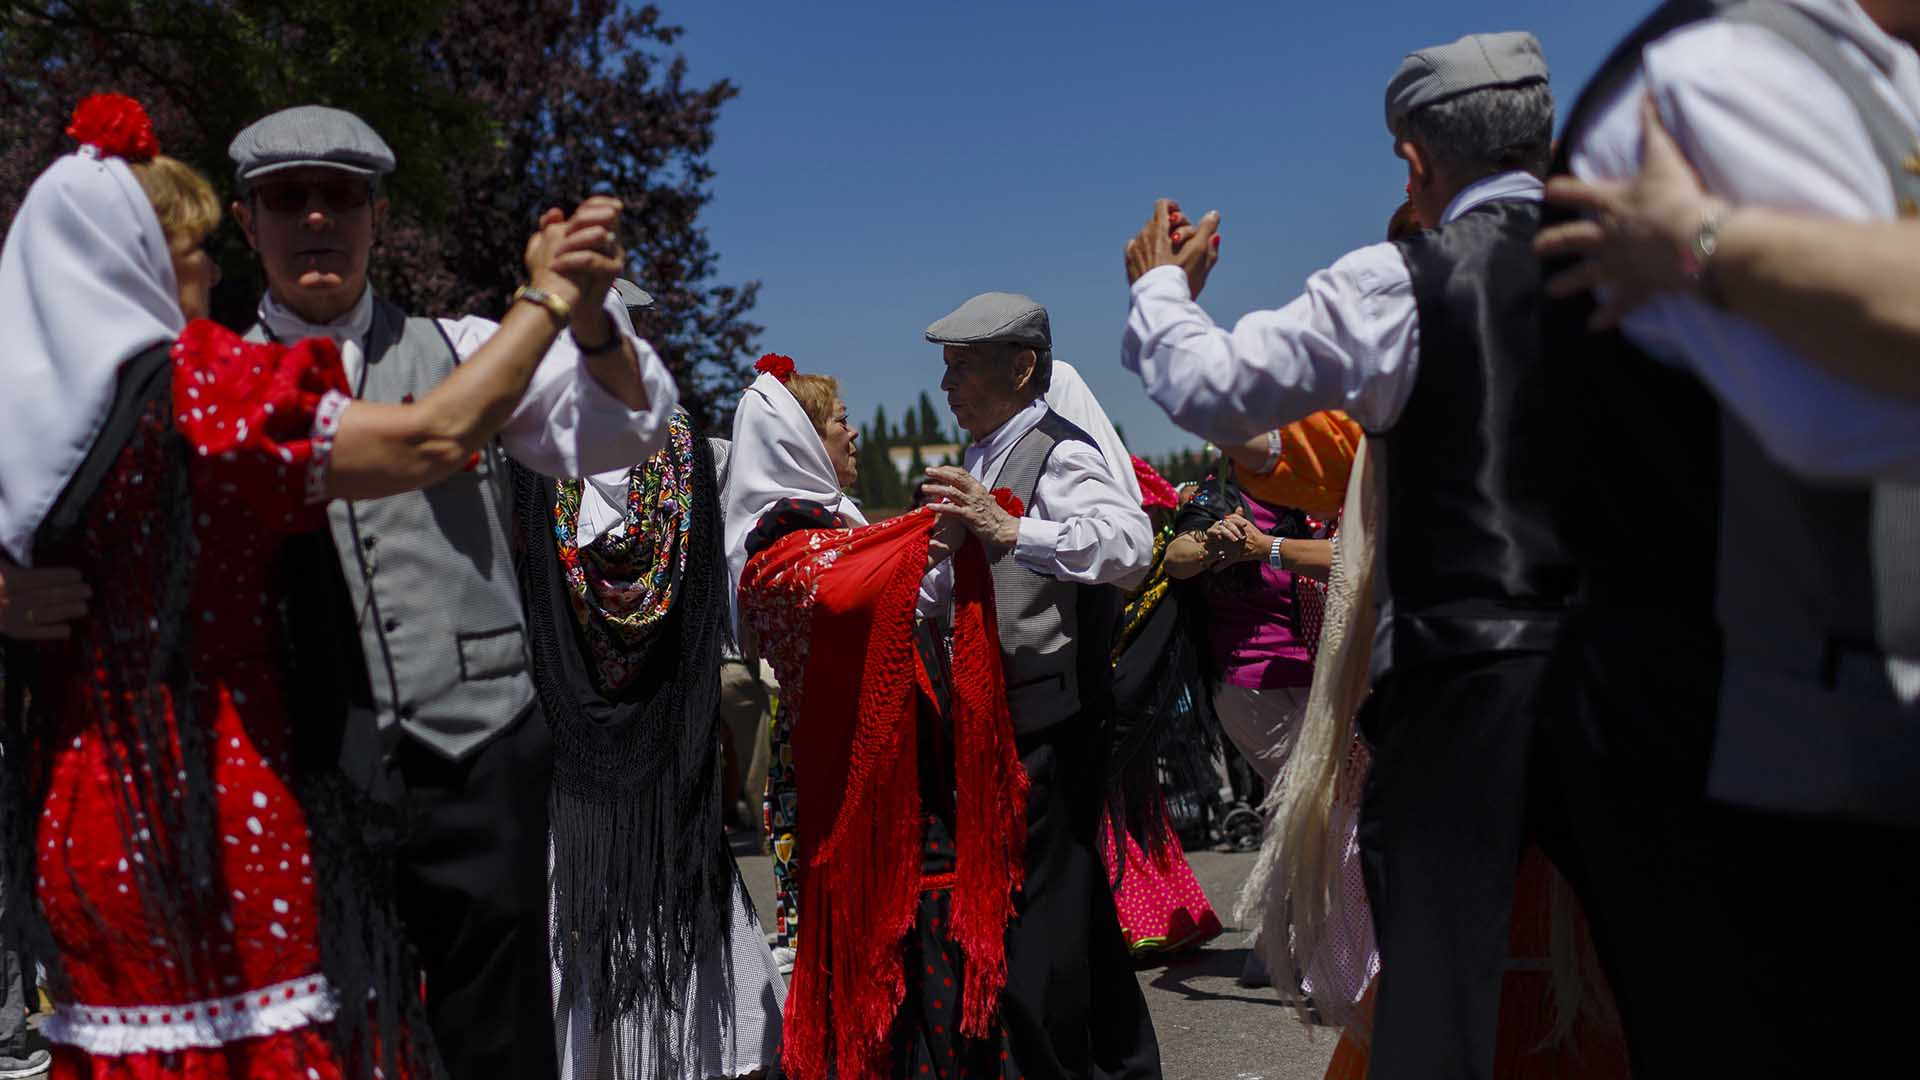 Revelers dressed in traditional chulapo outfits dance and sing during the San Isidro fiestas celebrating Madrid's patron saint in Madrid, Spain Friday, May 15, 2015. (AP Photo/Daniel Ochoa de Olza)